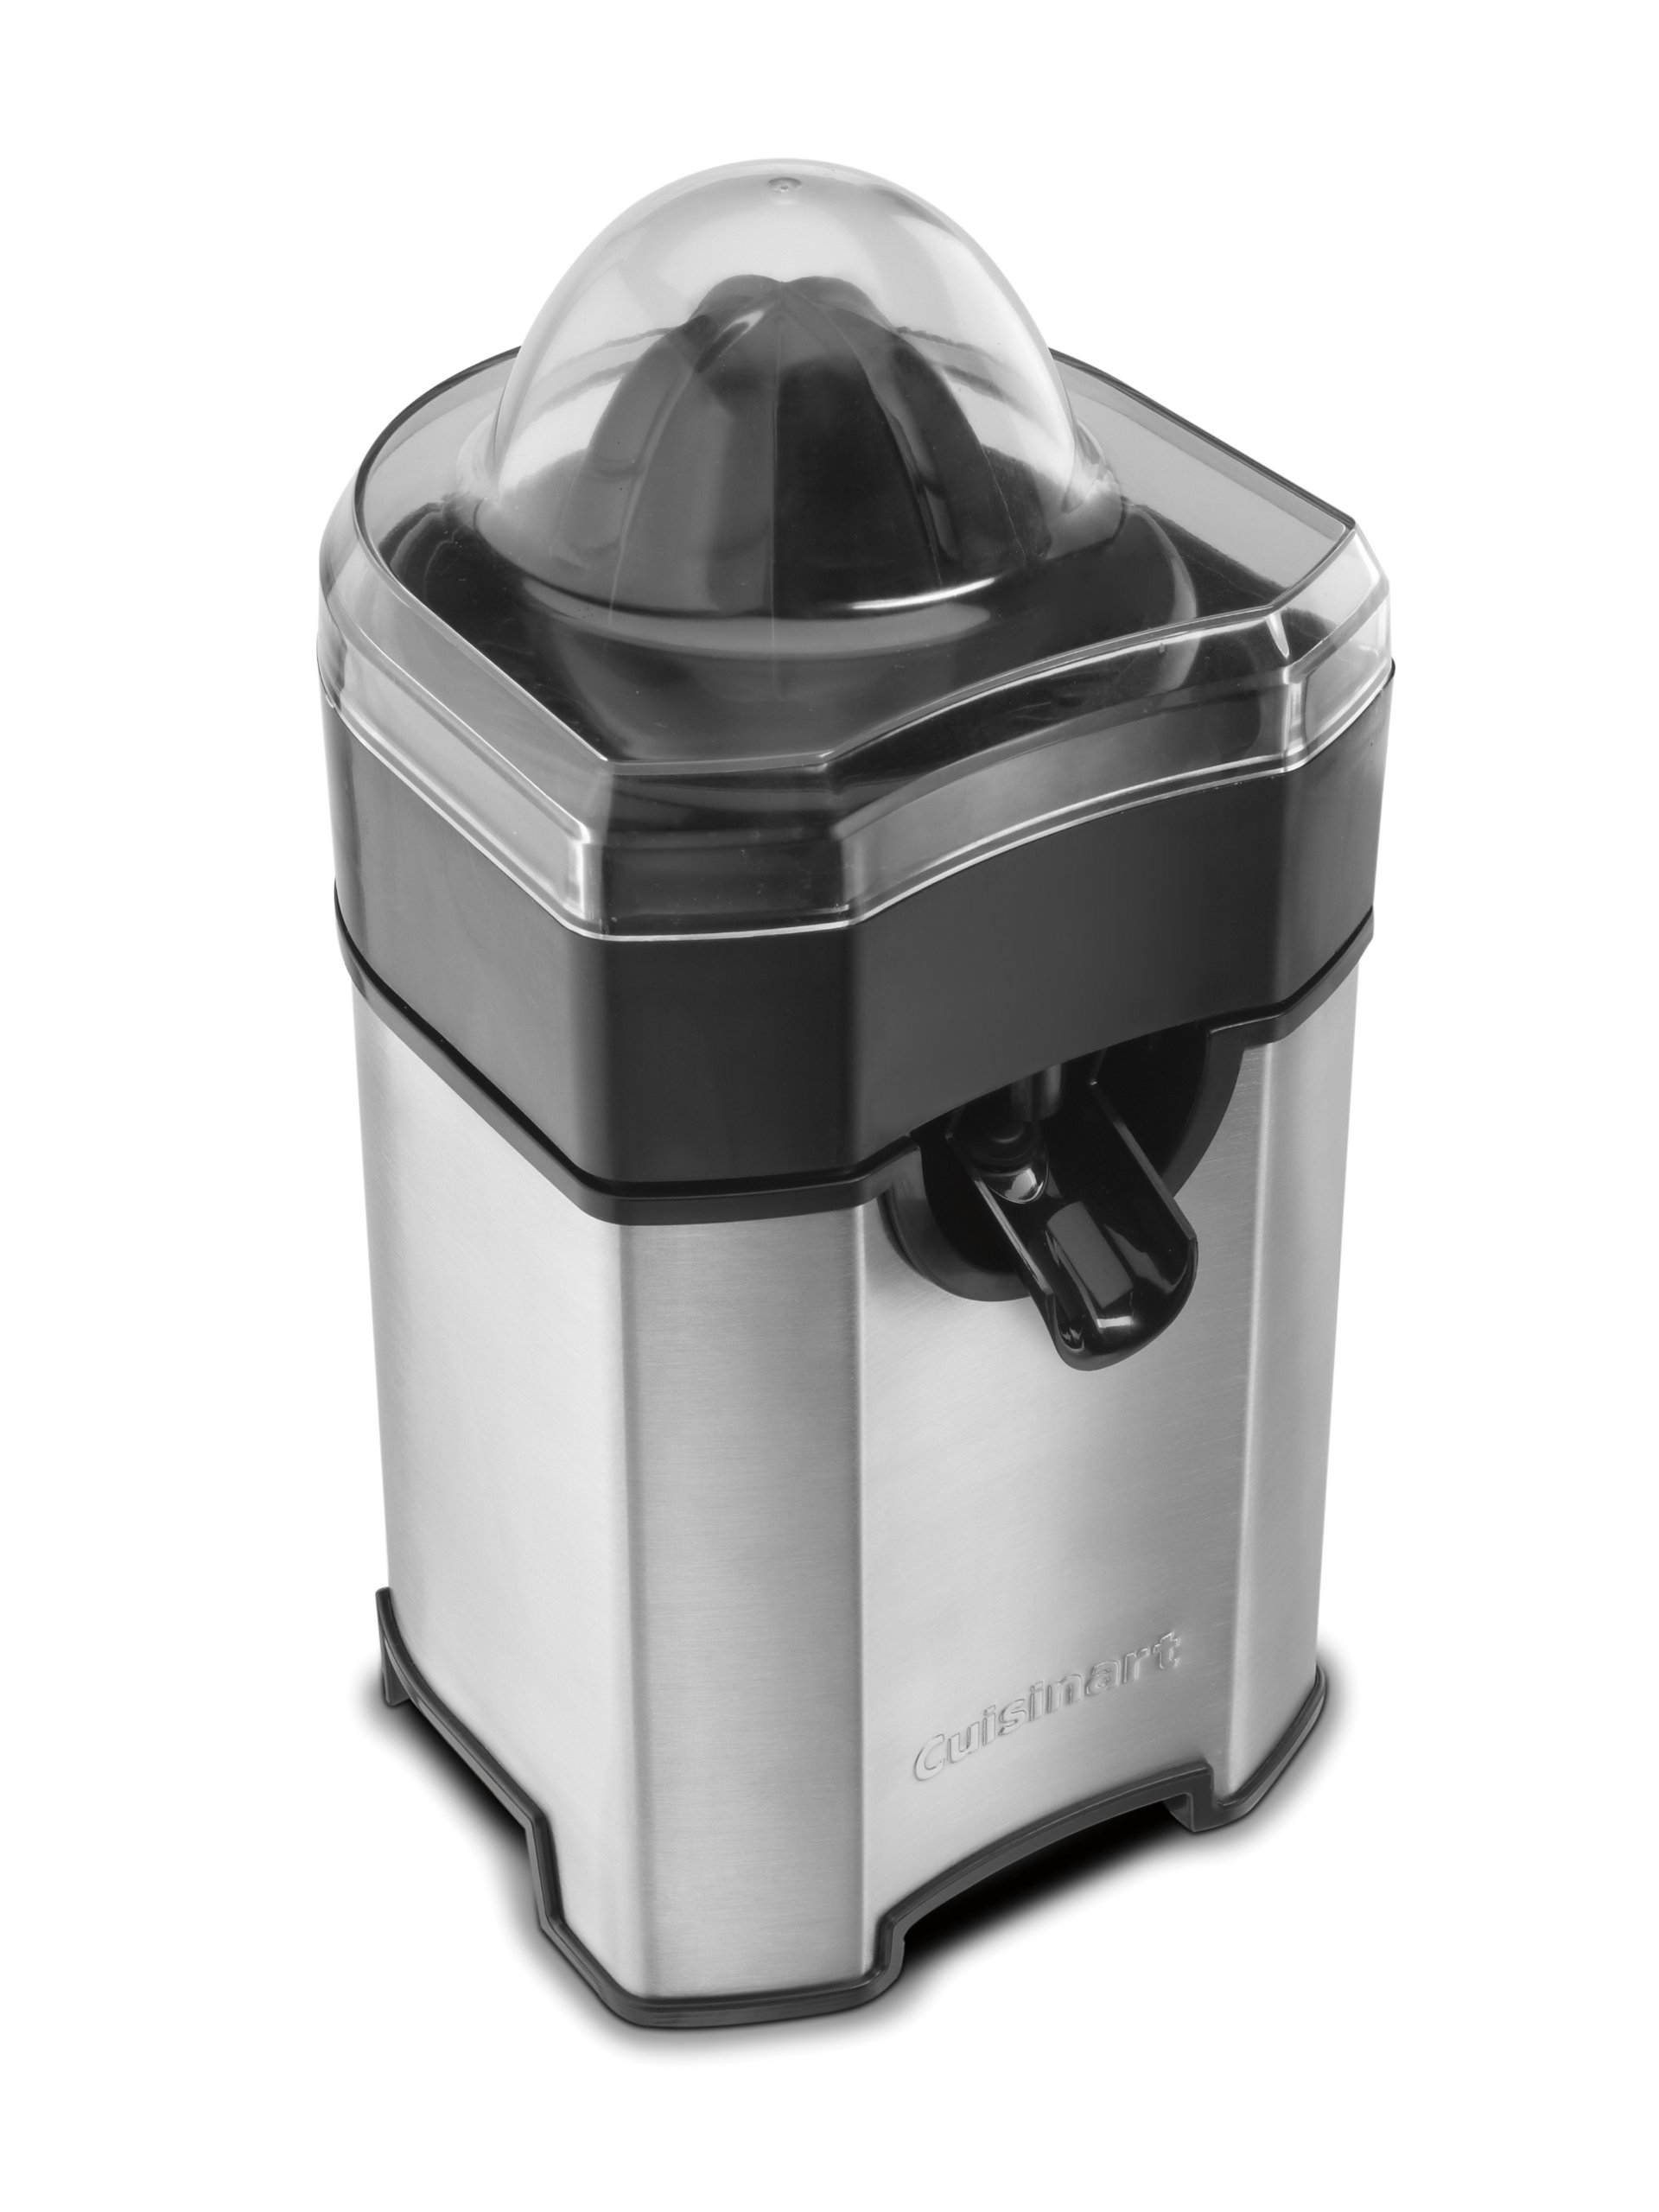 Cuisinart CCJ-500 Pulp Control Citrus Juicer, Brushed Stainless by Cuisinart